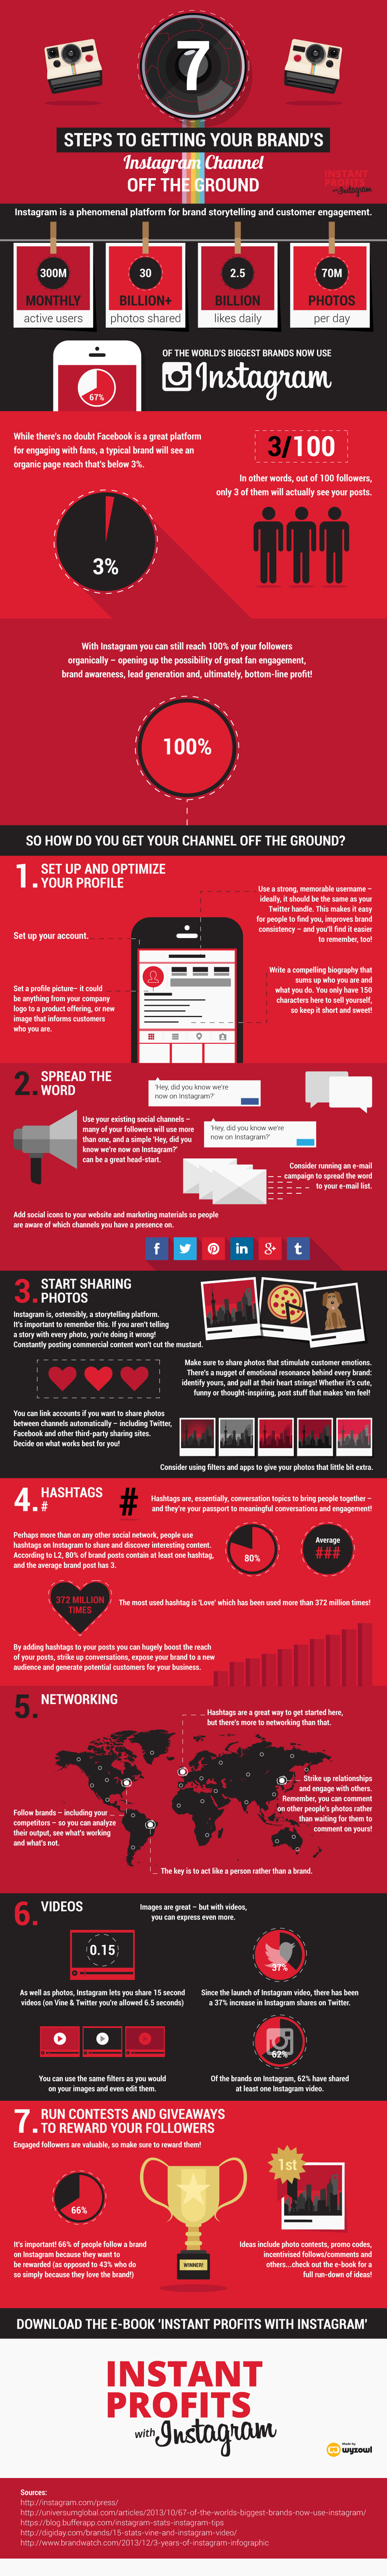 7-steps-to-getting-your-brands-instagram-channel-off-the-ground_54cf8cdb4aff3